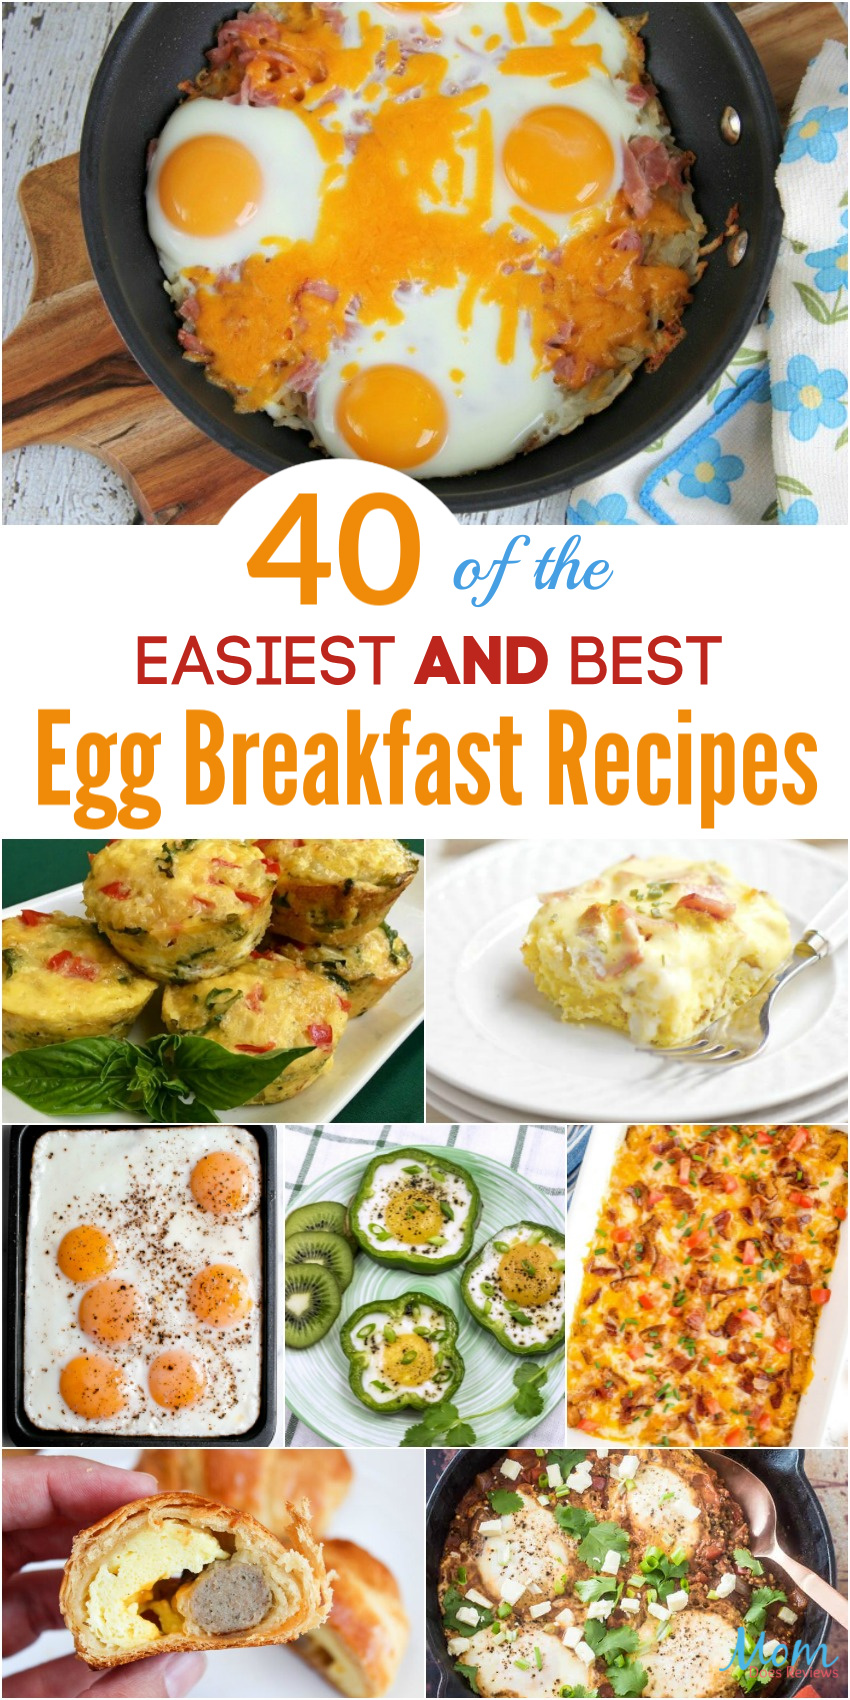 40 of the Easiest AND Best Egg Breakfast Recipes Around #breakfast #easymeals #recipes